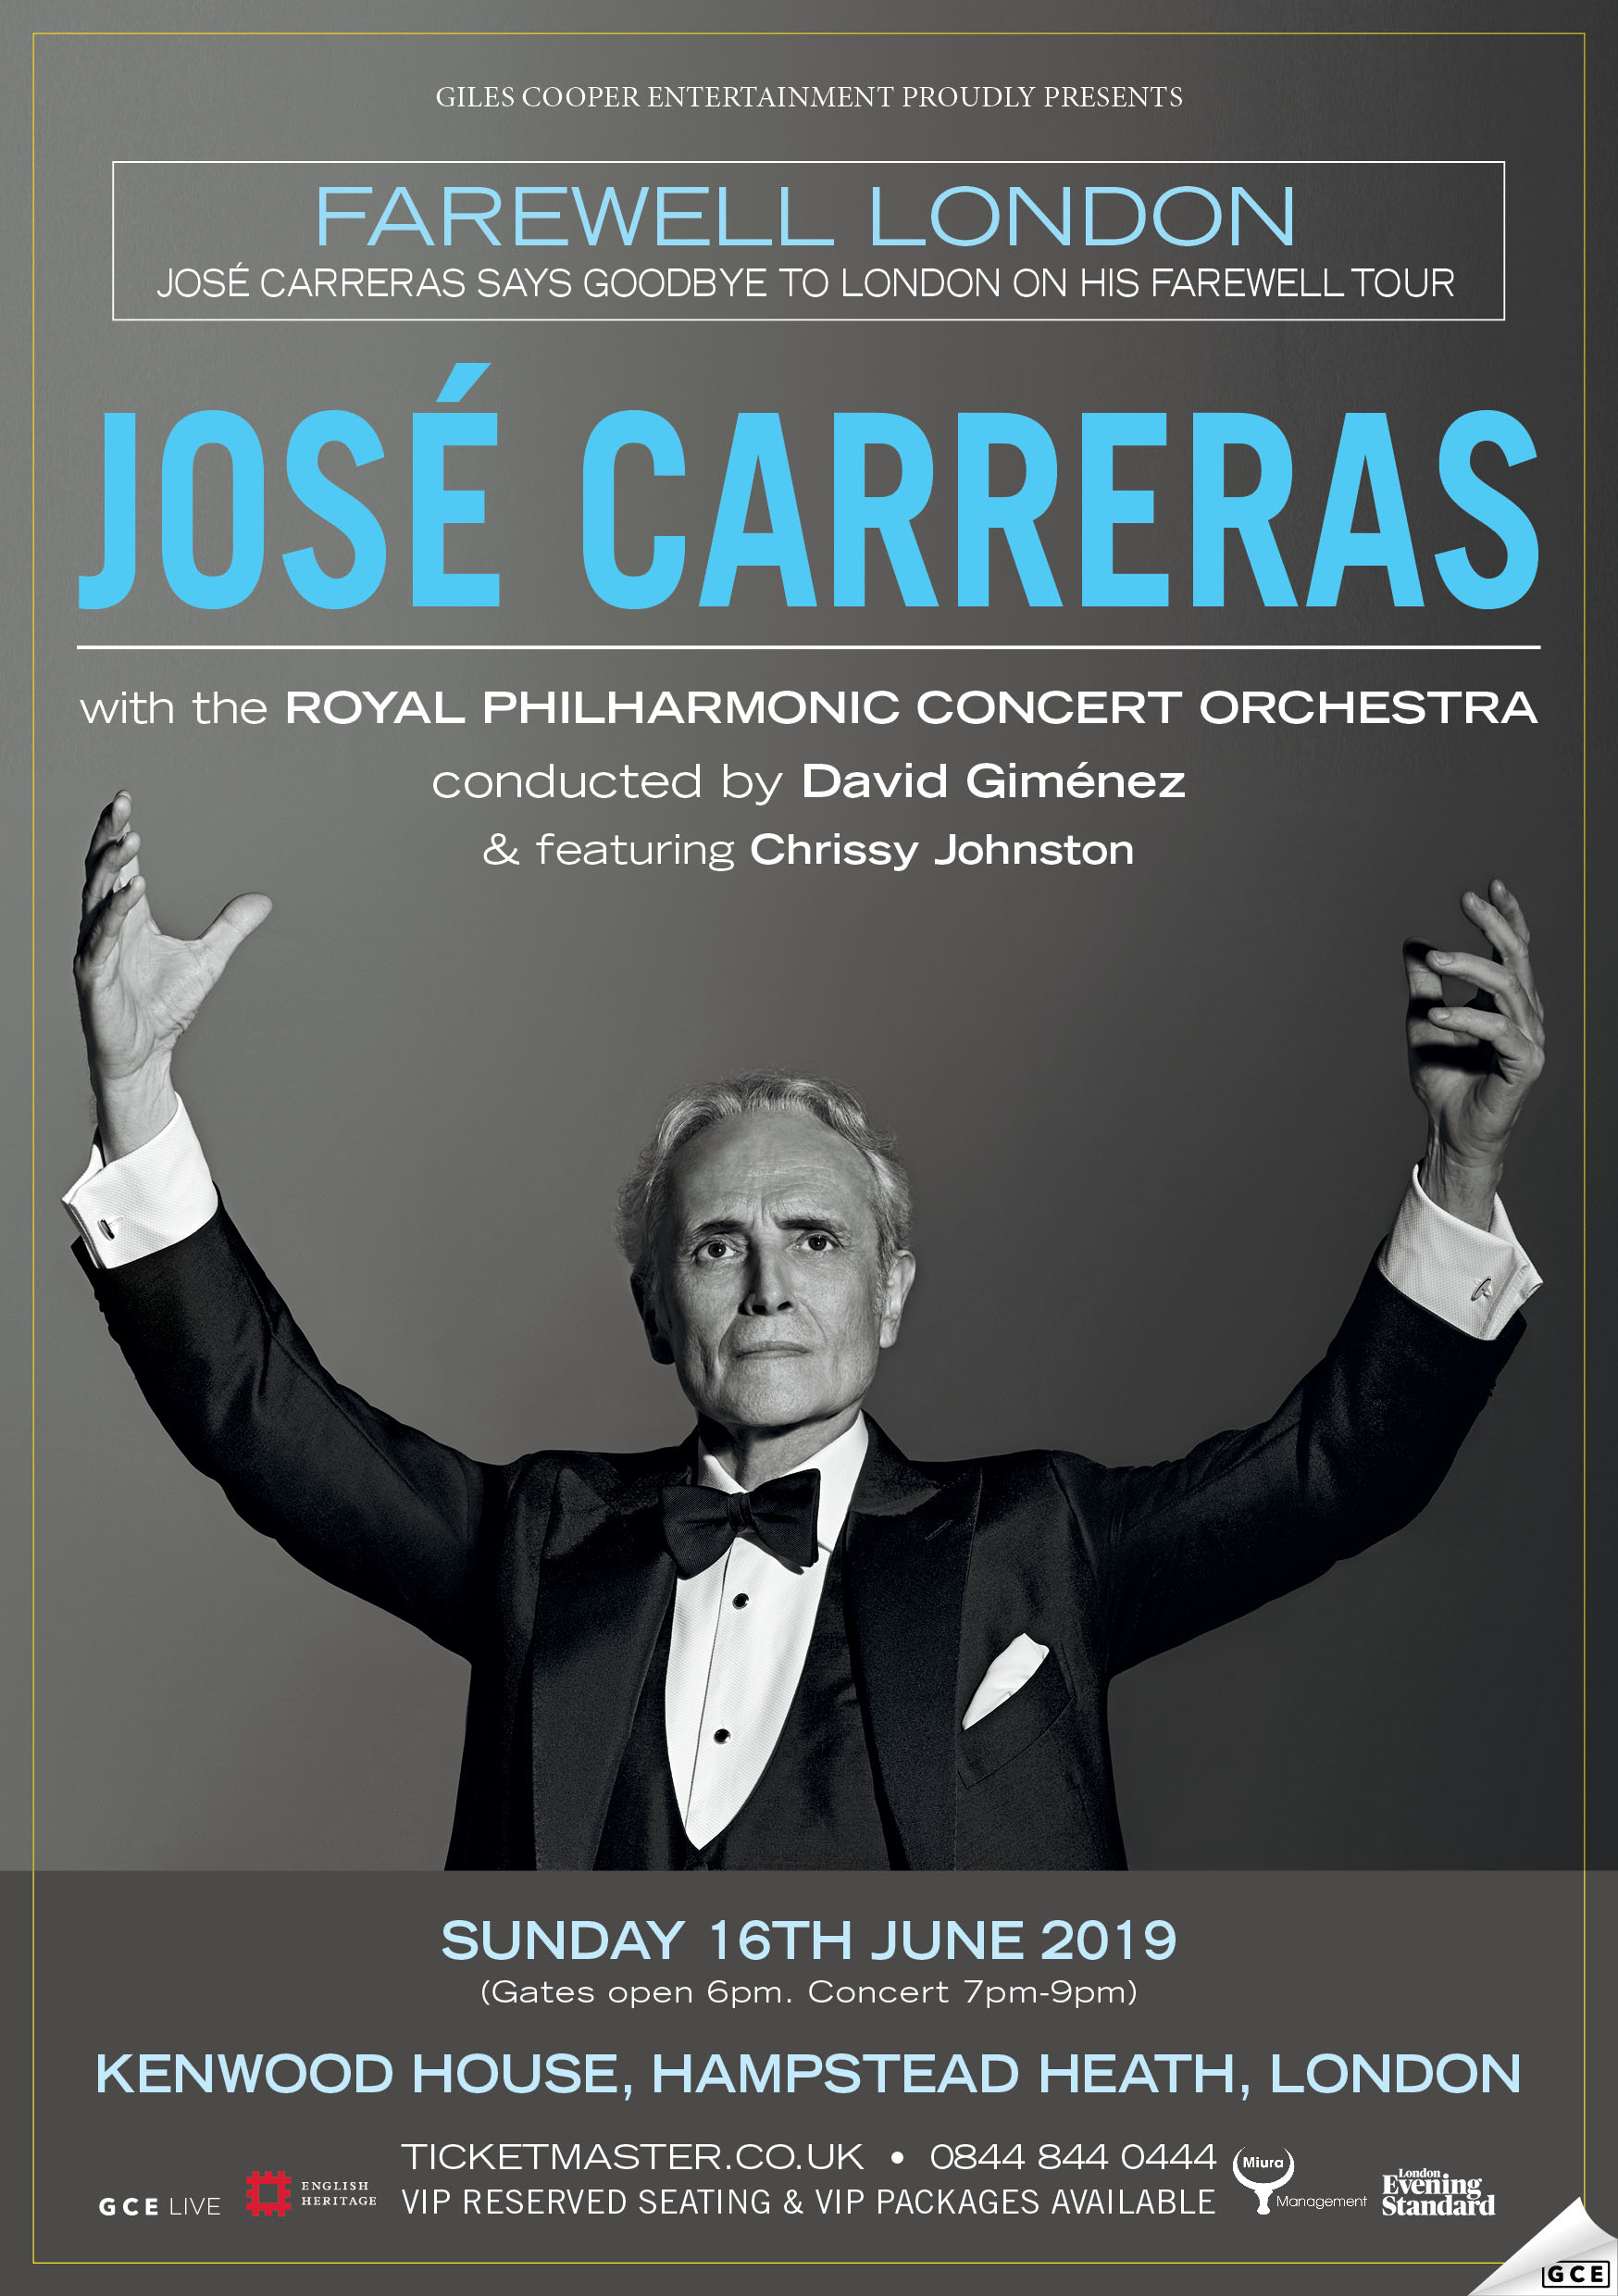 jose carreras, ticketmaster, chrissy, kenwood house, hampsted heath, christina, johnston, opera, royal, philharmonic, david gimenez, june, london